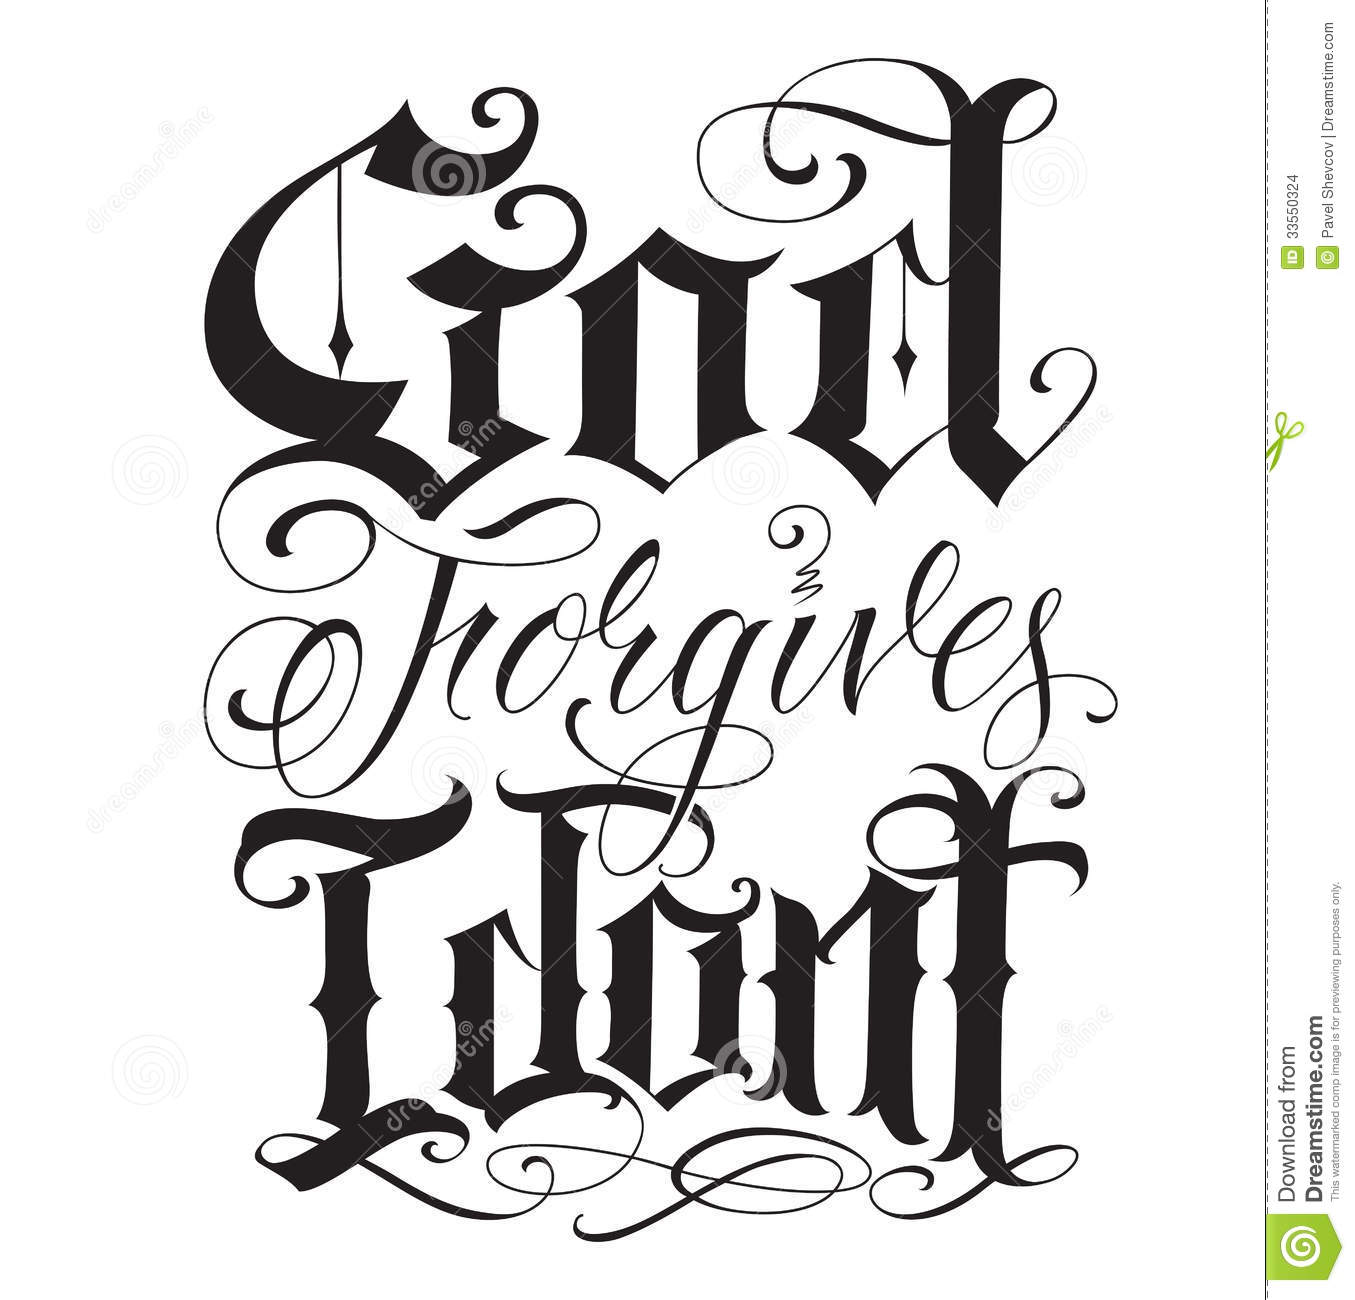 Old Letter clipart hand Forgives Forgives dont hand tattoo